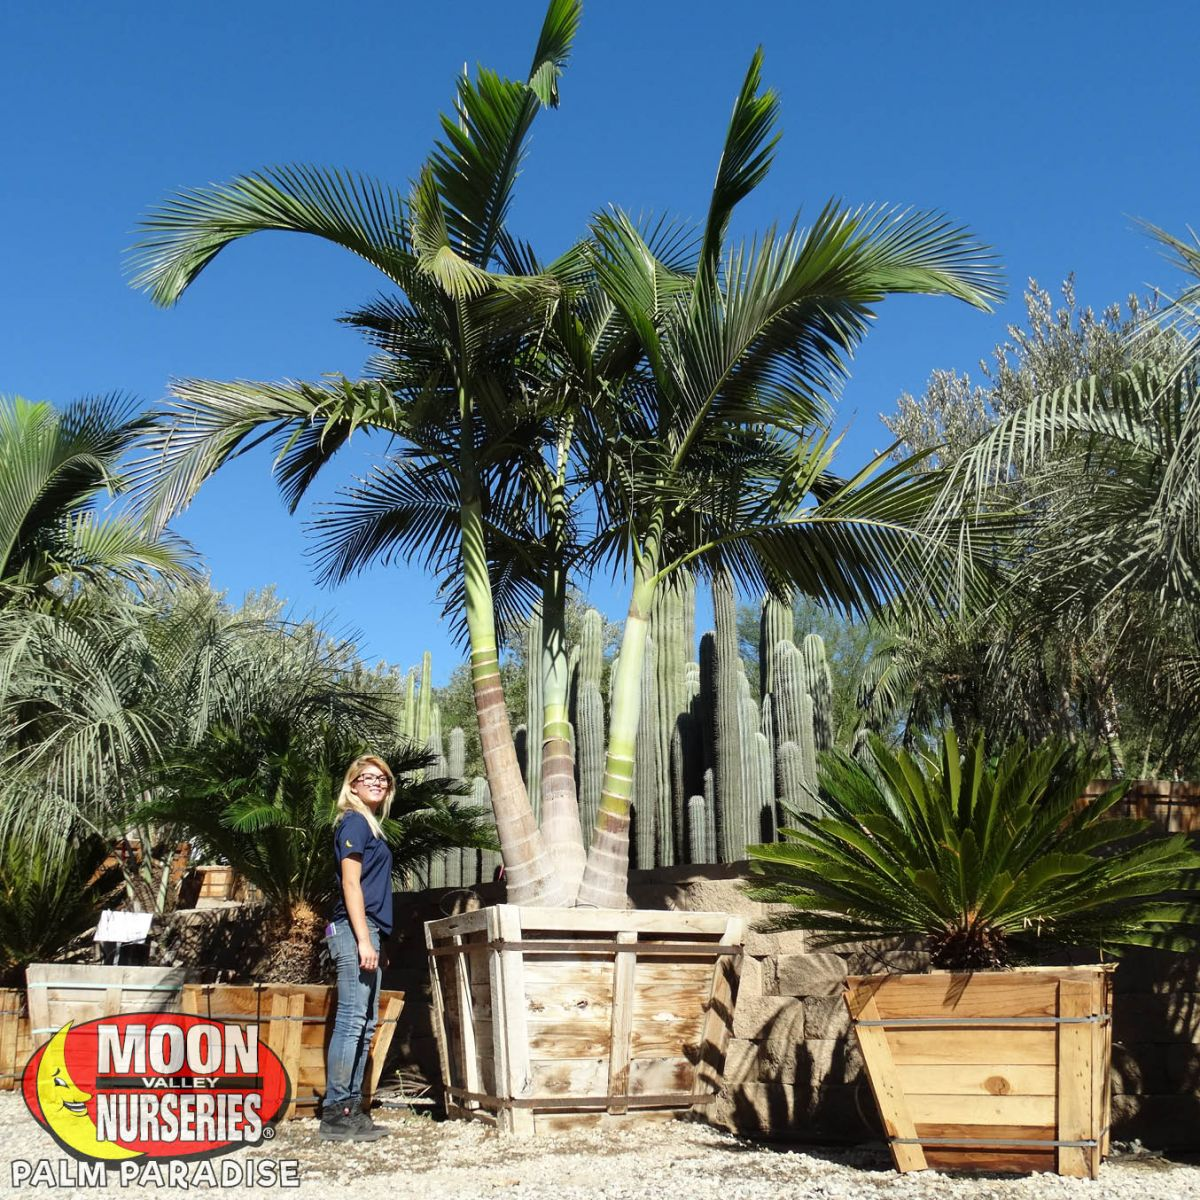 King Palm Palm Tree Palm Paradise Nursery